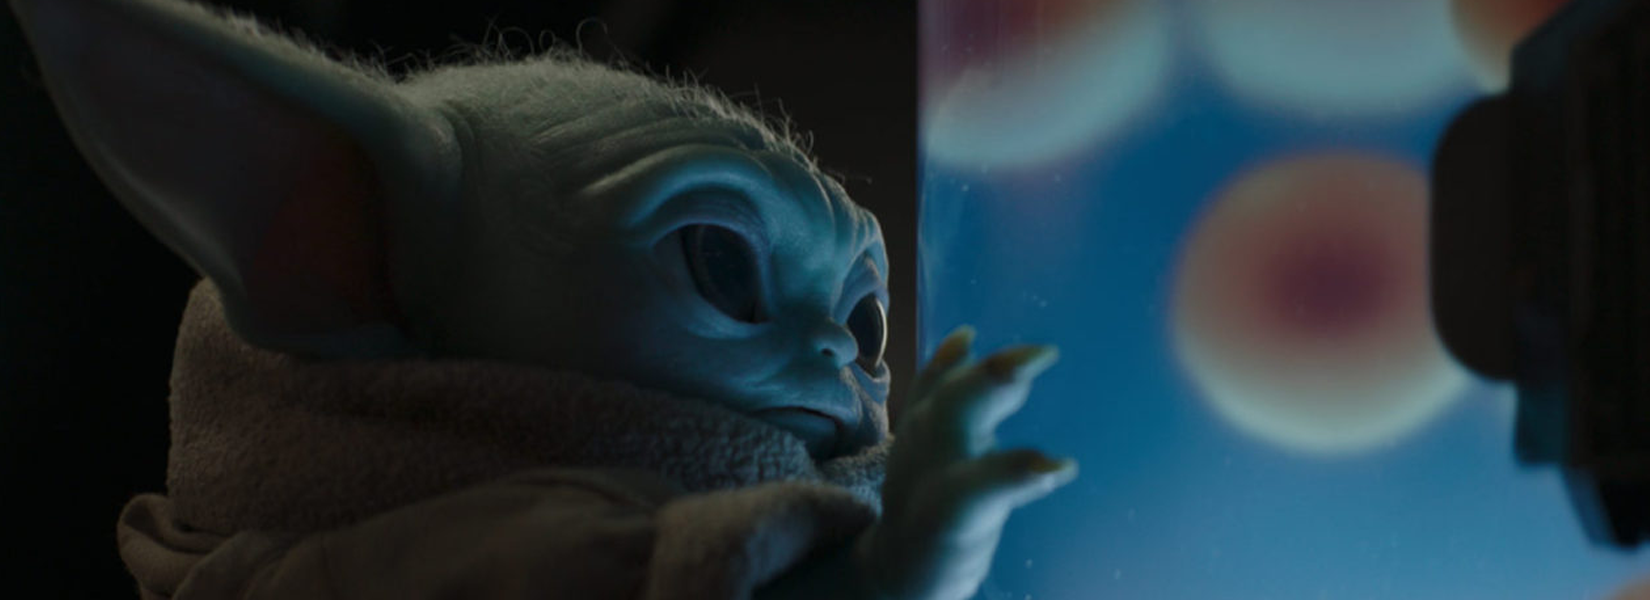 Sounds like People Have an Issue with Baby Yoda